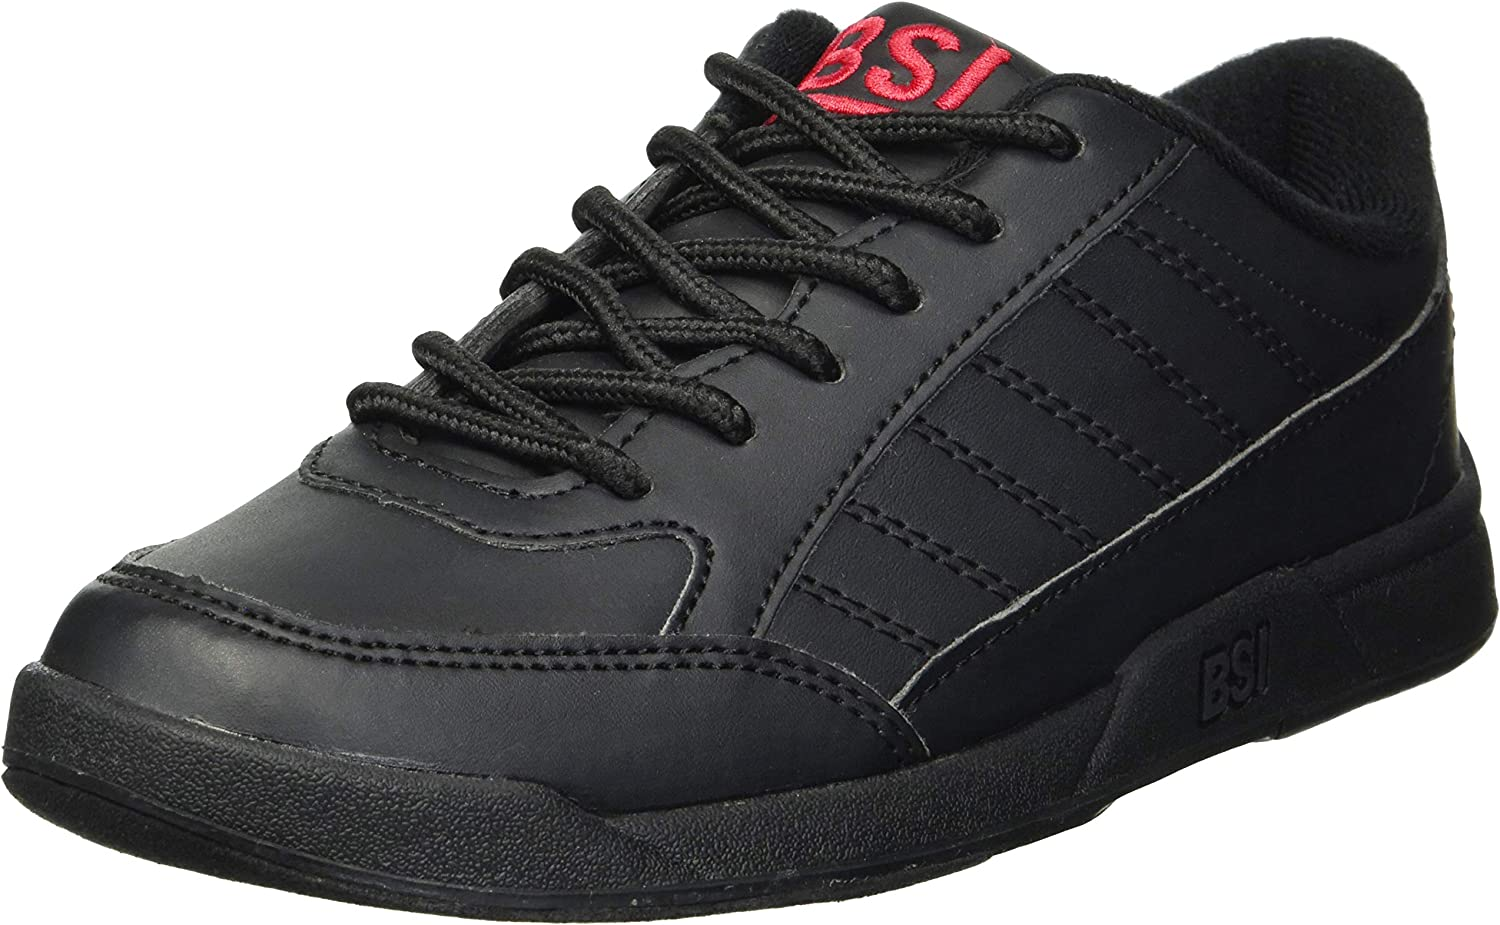 Omaha Mall BSI Boy's Basic Super popular specialty store Bowling Shoes #533